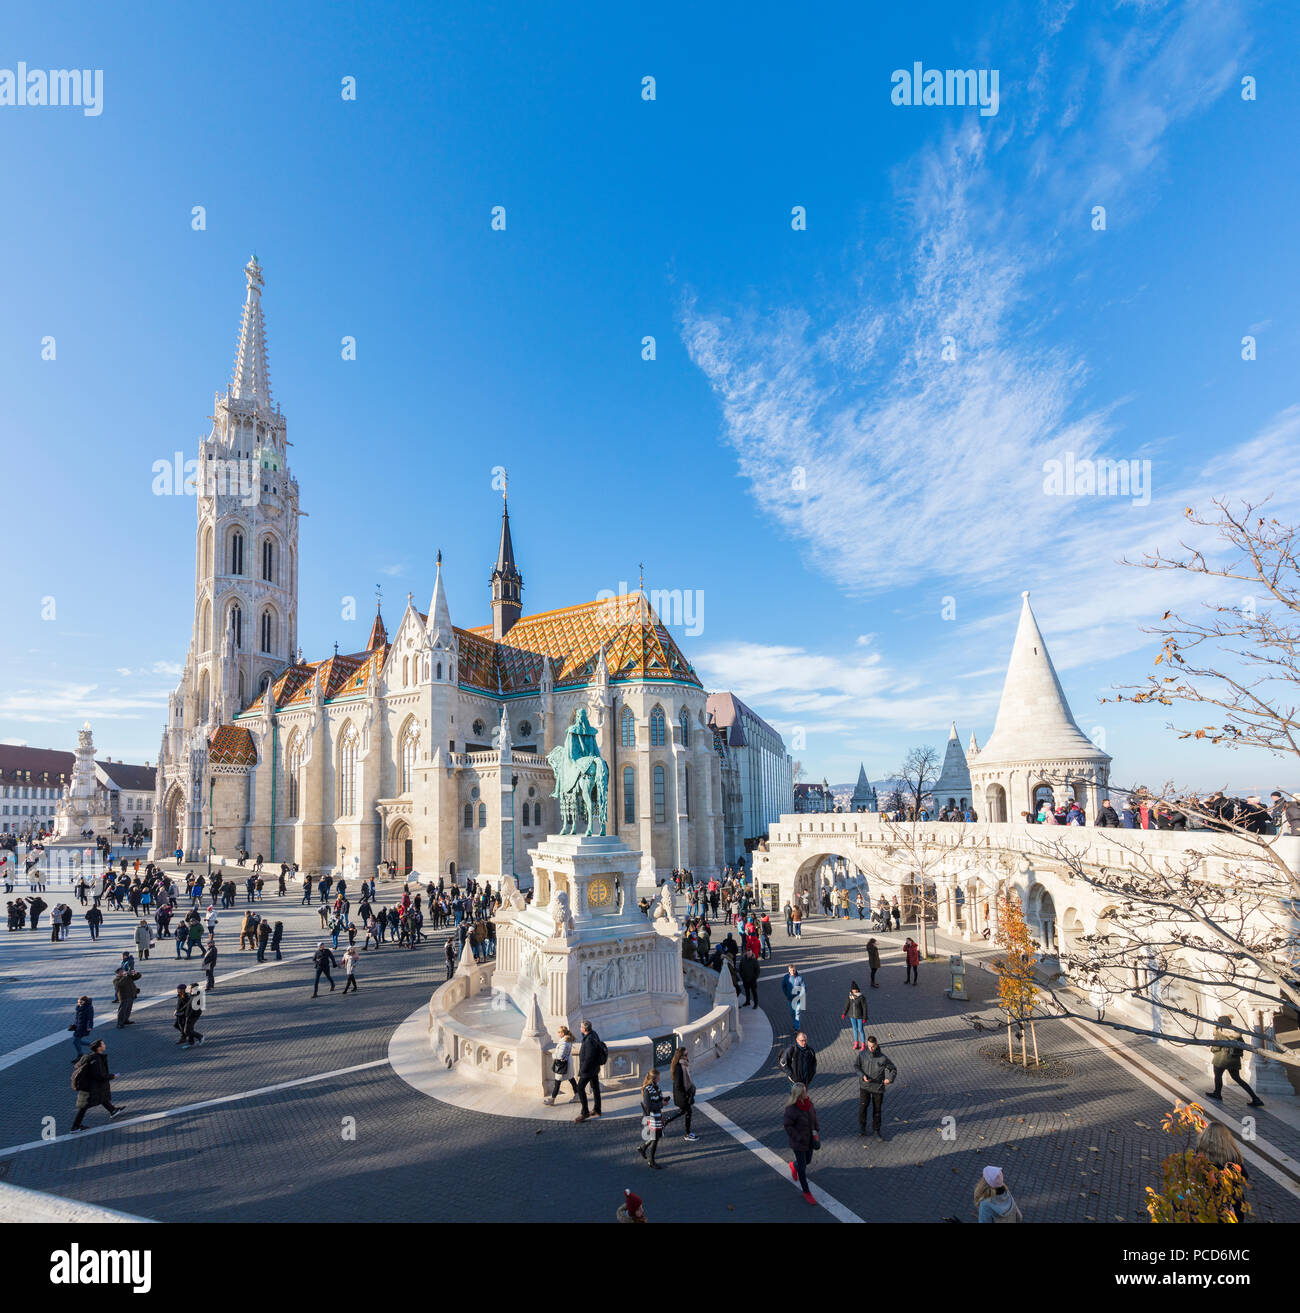 Panoramic of Matthias Church and Fisherman's Bastion, Budapest, Hungary, Europe - Stock Image